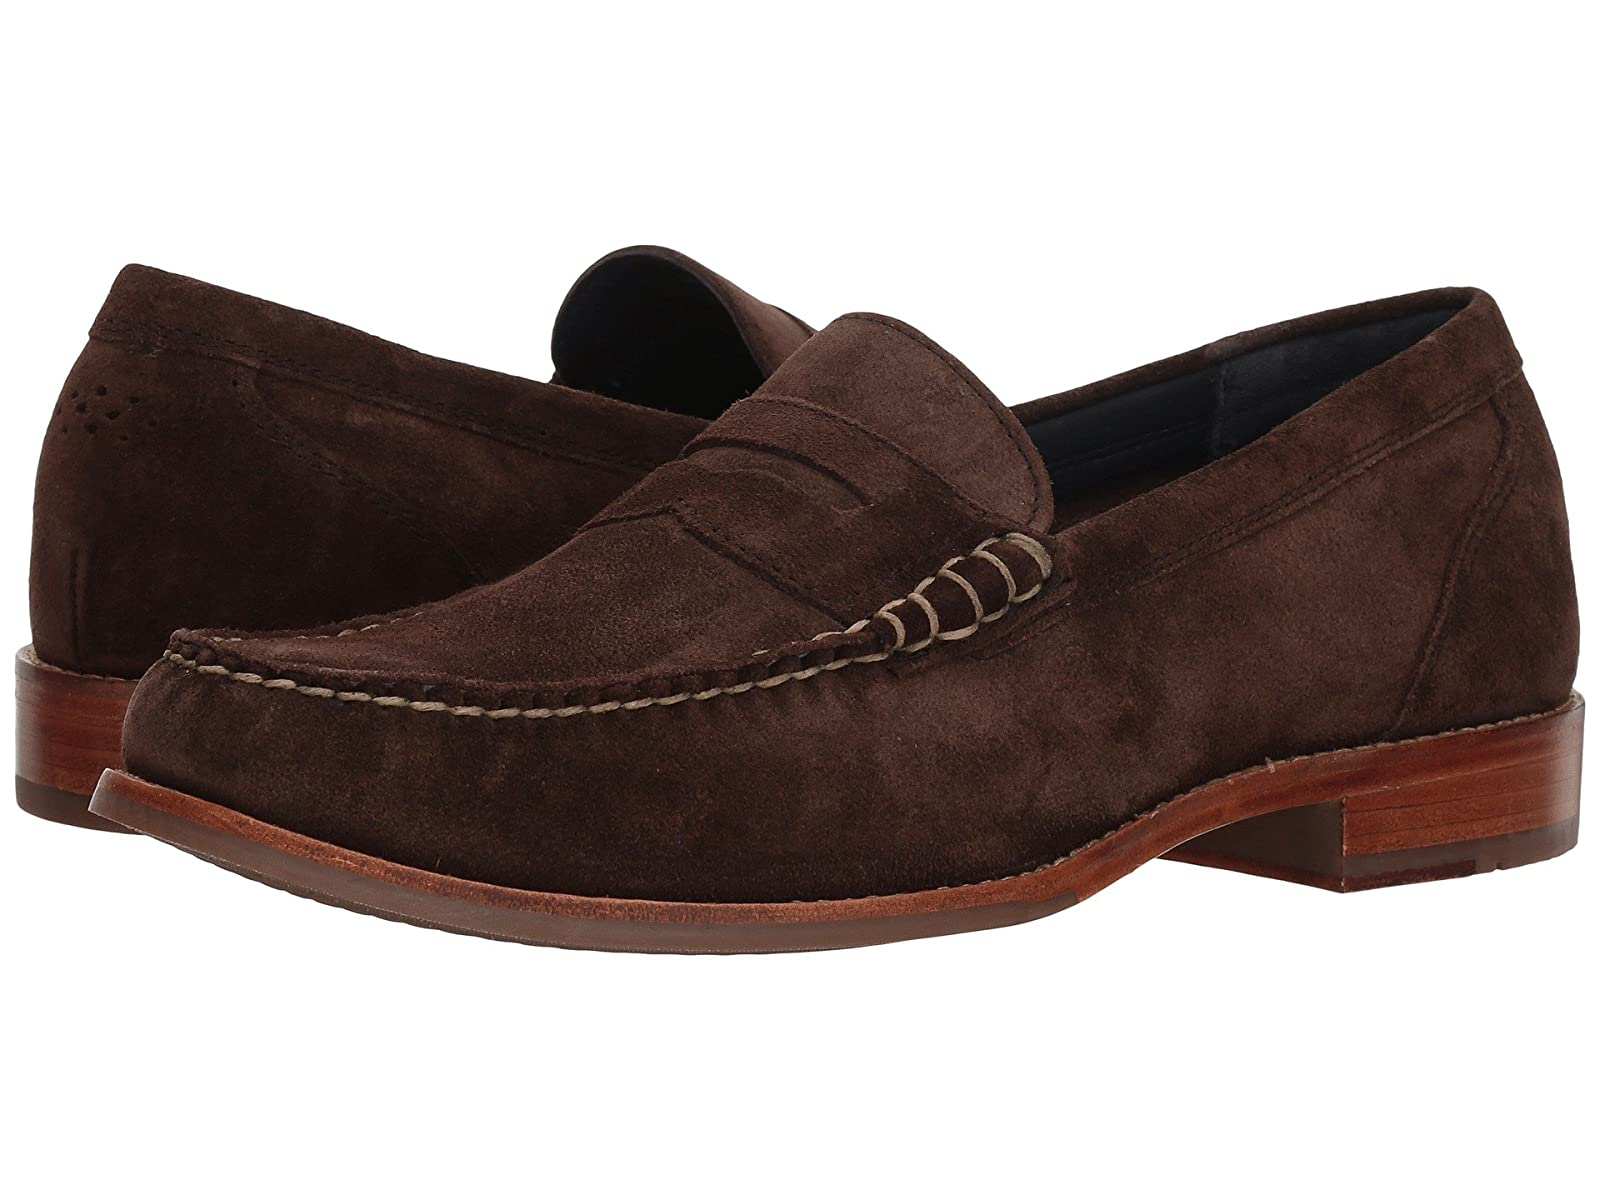 Cole Haan Pinch Grand Casual Penny LoaferAtmospheric grades have affordable shoes